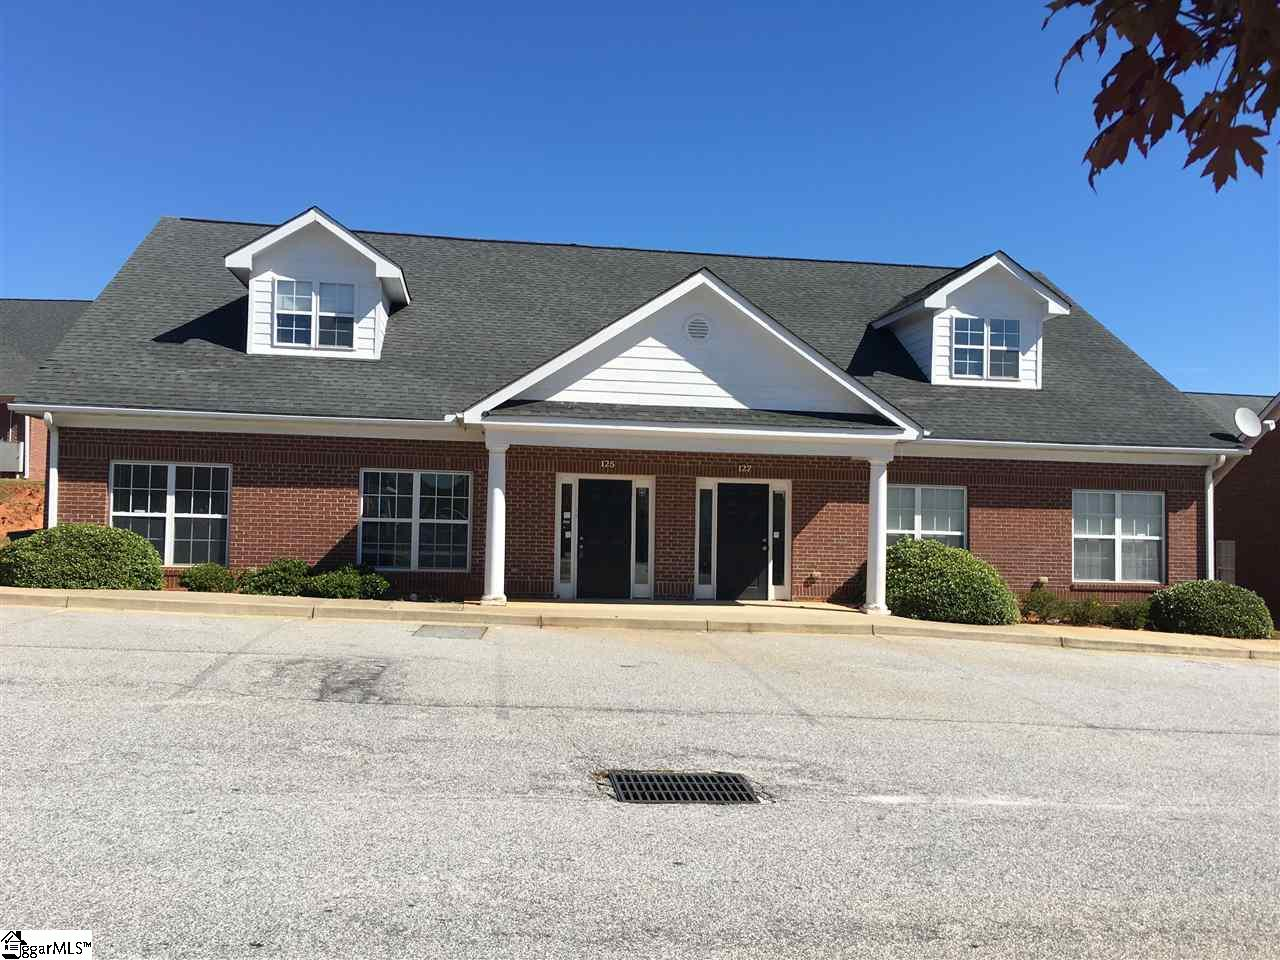 125 - 127 Commons Way, Greenville, SC 29611